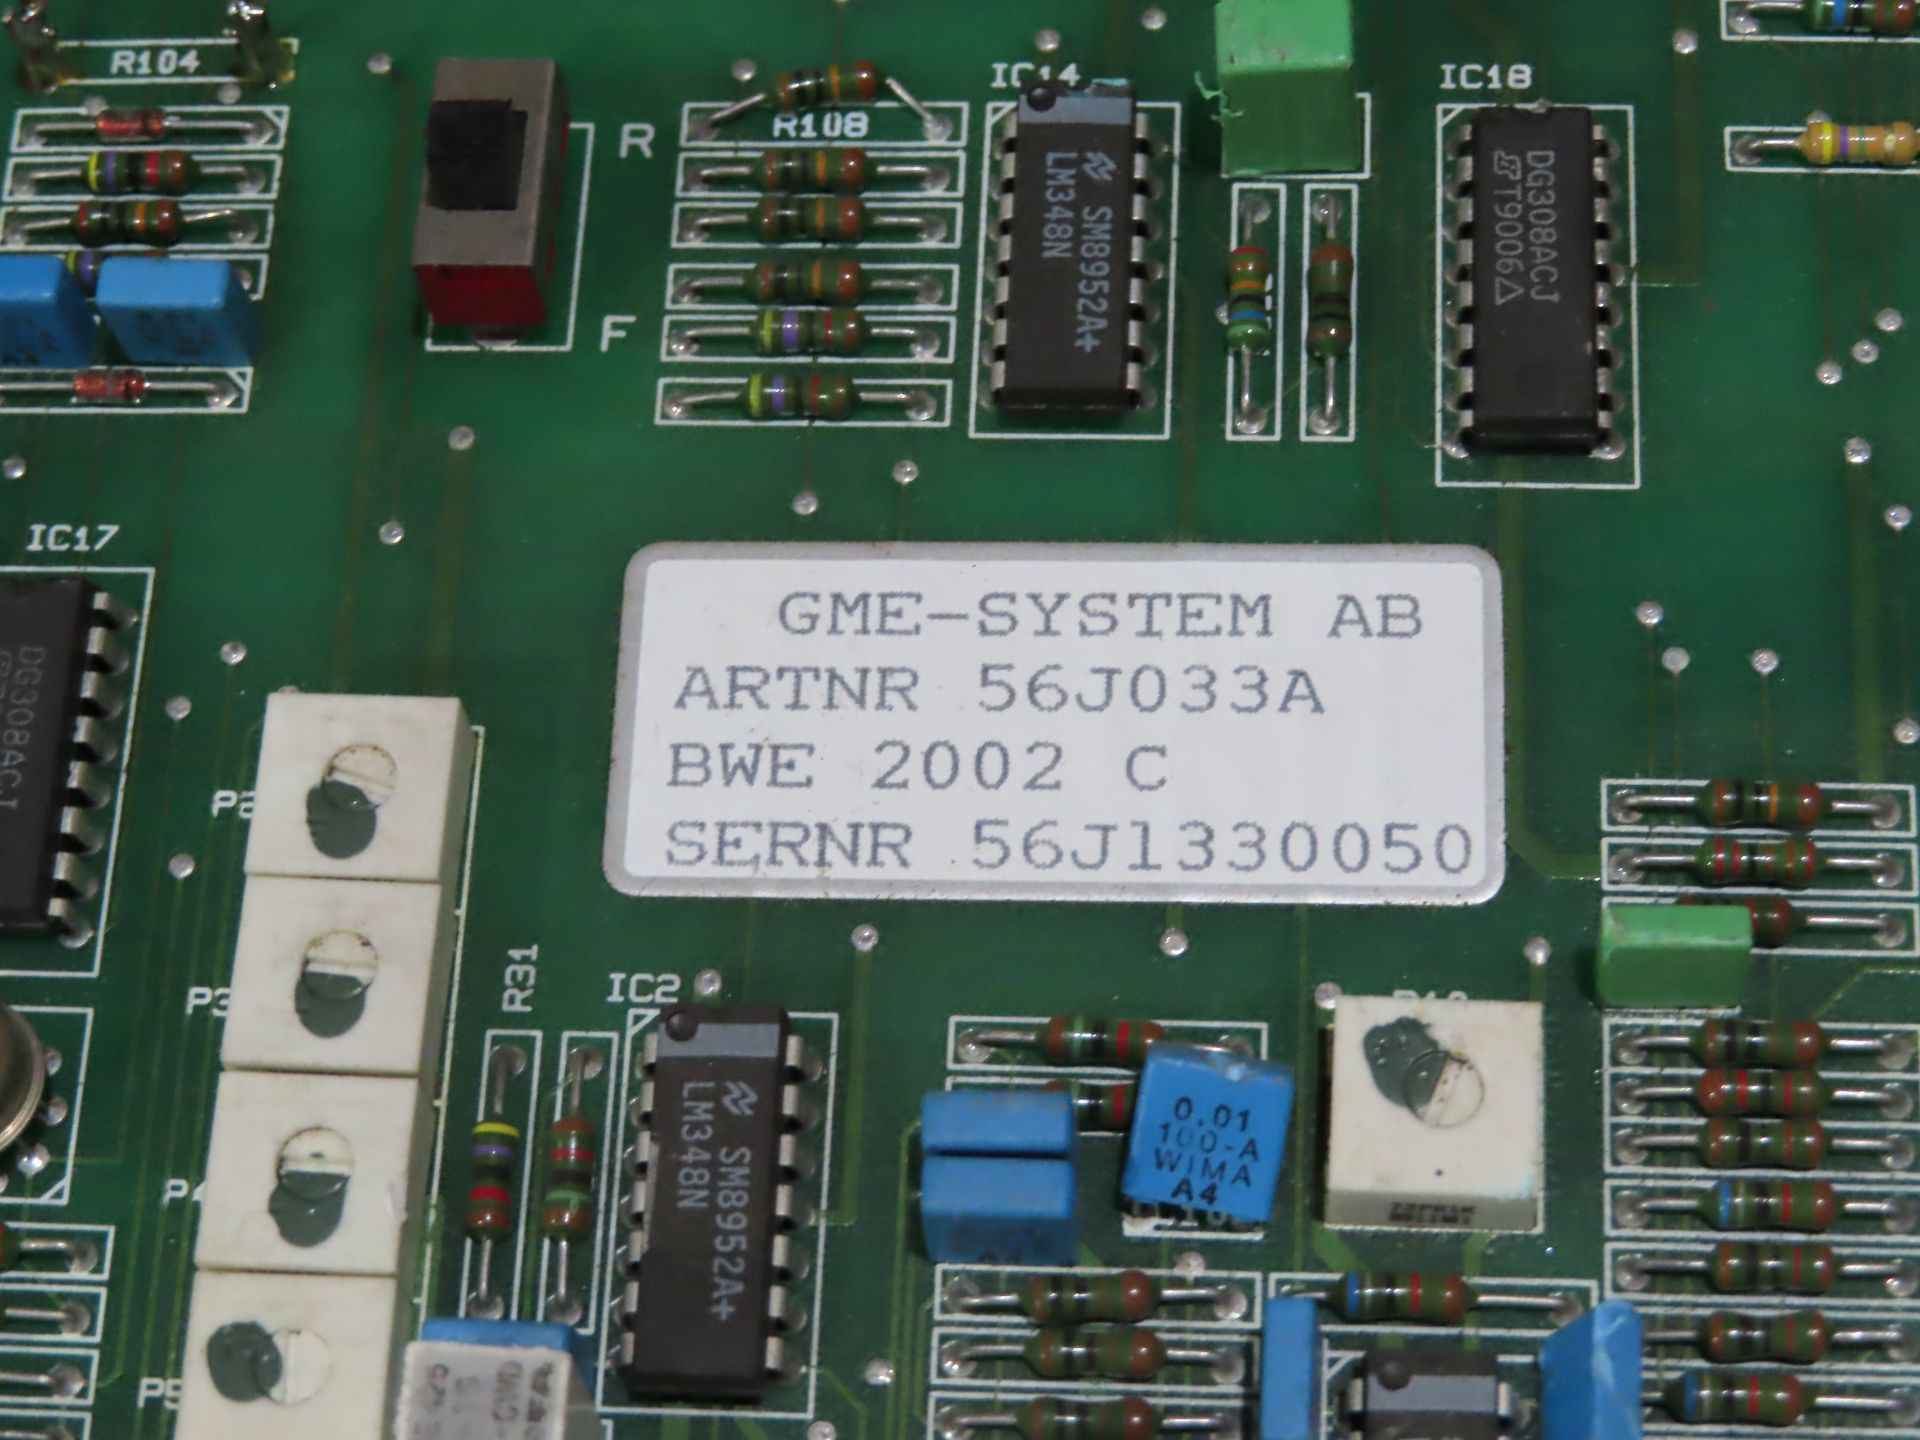 Lot 41 - Qty 3 Altas Copco model 56J033A control boards, as always, with Brolyn LLC auctions, all lots can be